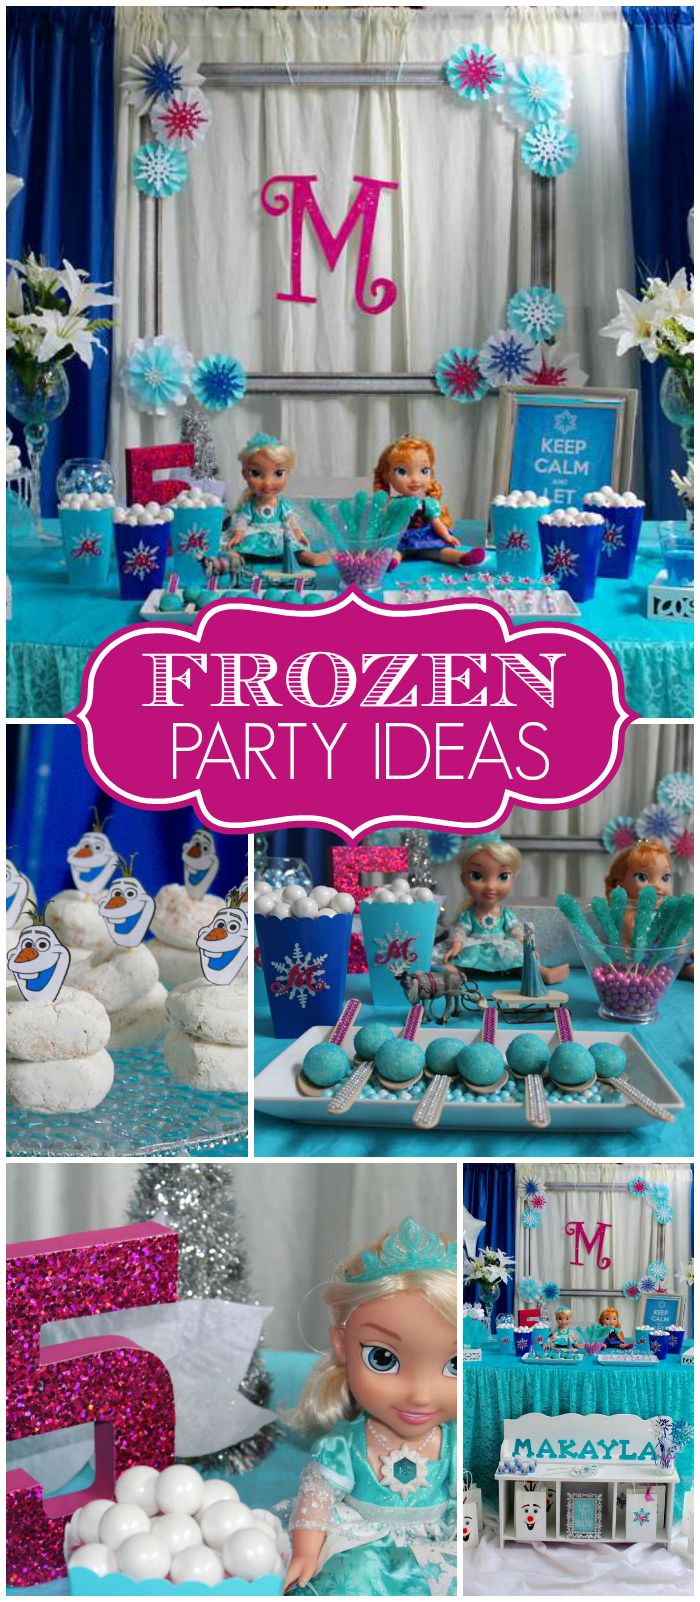 This Frozen Party Is Truly Magical See More Party Ideas At Catchmyparty Com Urodziny I Tort